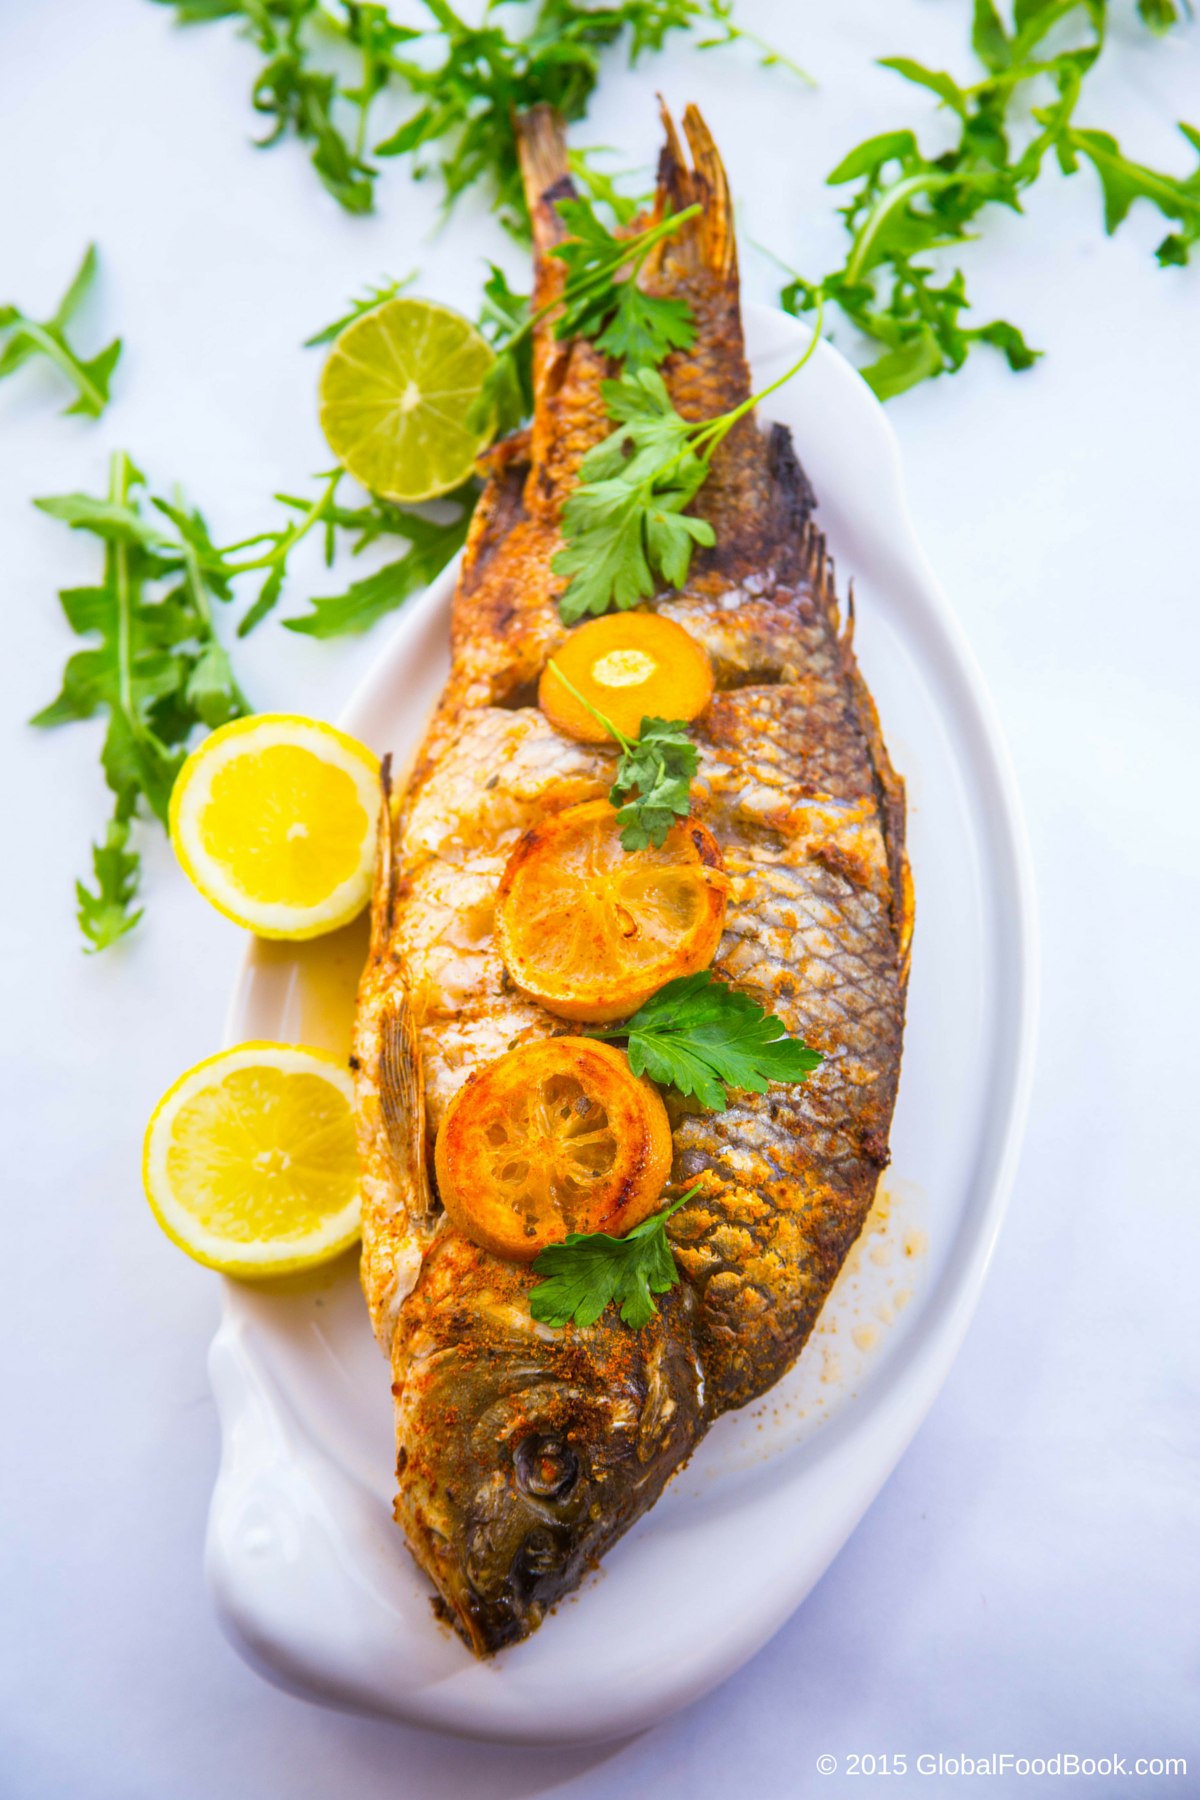 Spicy Grilled Croaker Fish Recipe Croaker Fish Recipe Fish Recipes Seafood Recipes